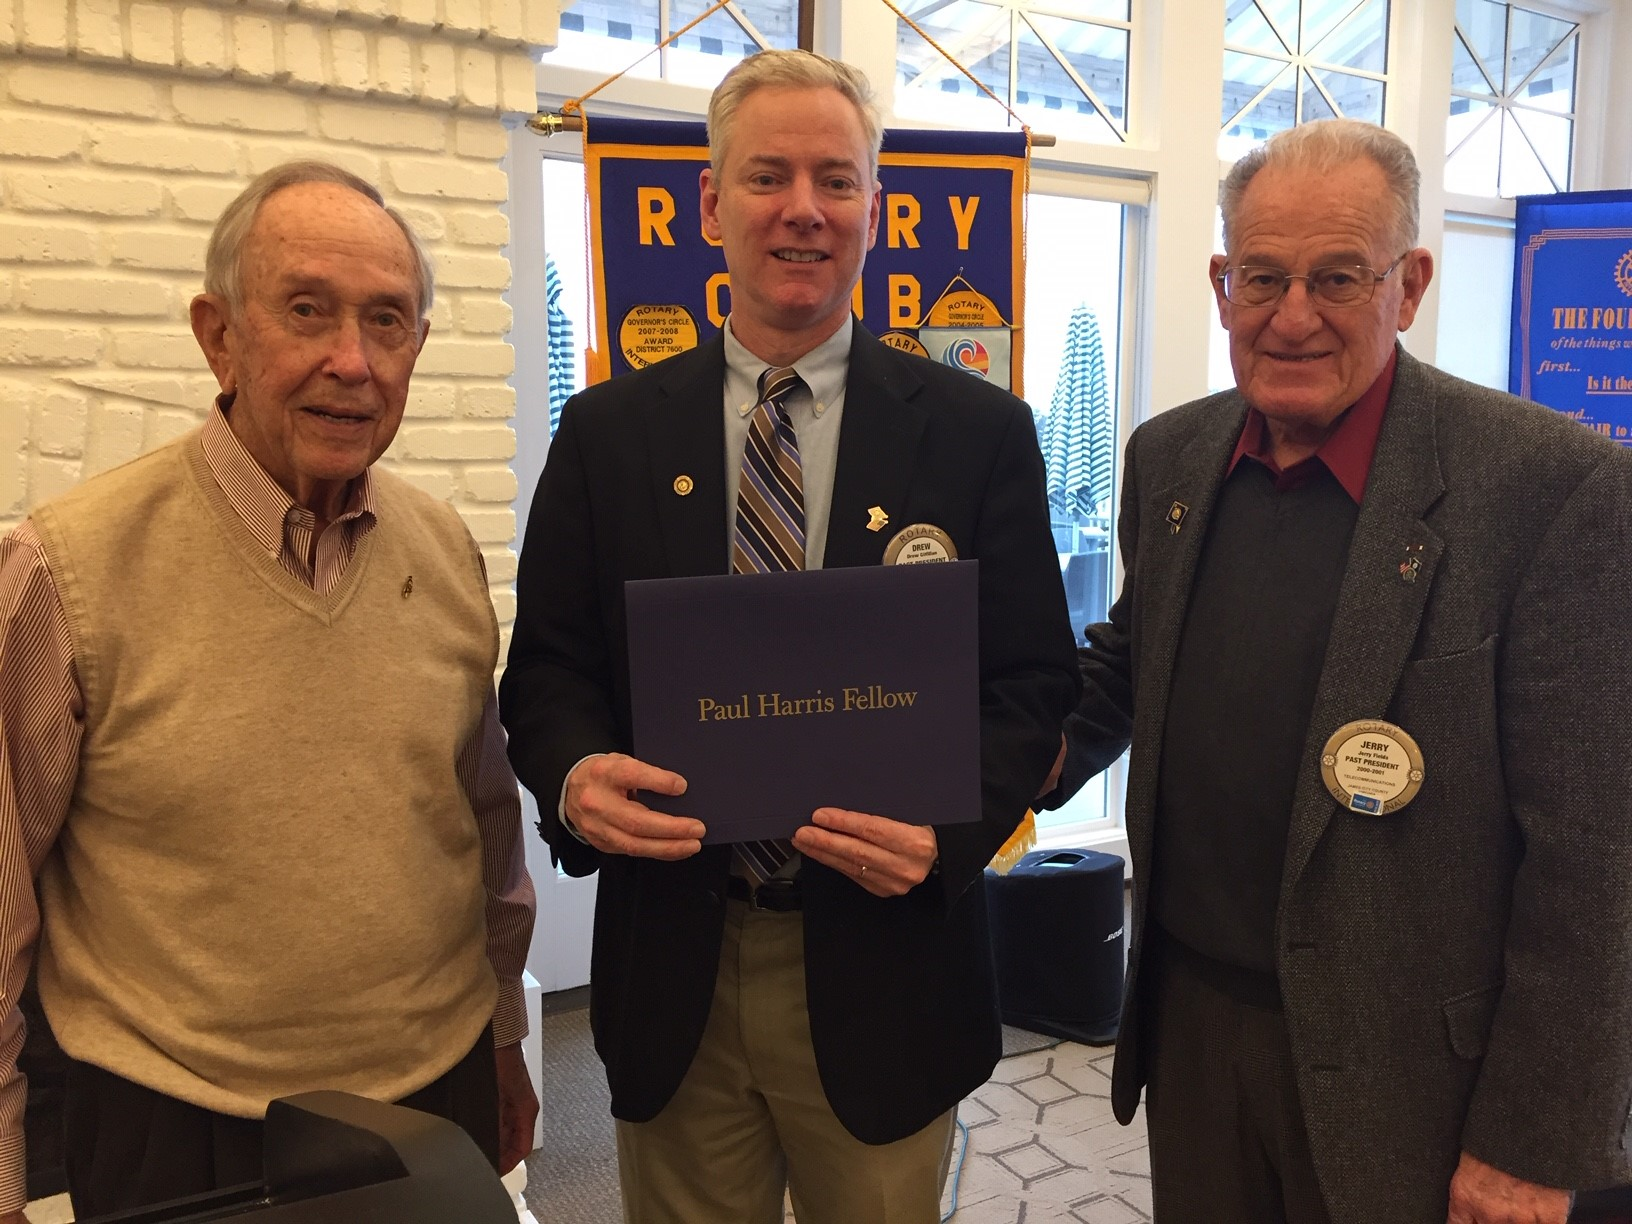 new paul harris fellow - Hal Campbell (left) and Jerry Fields (right) congratulate our newest Paul Harris member, Dr. Drew Gilfillan (center).